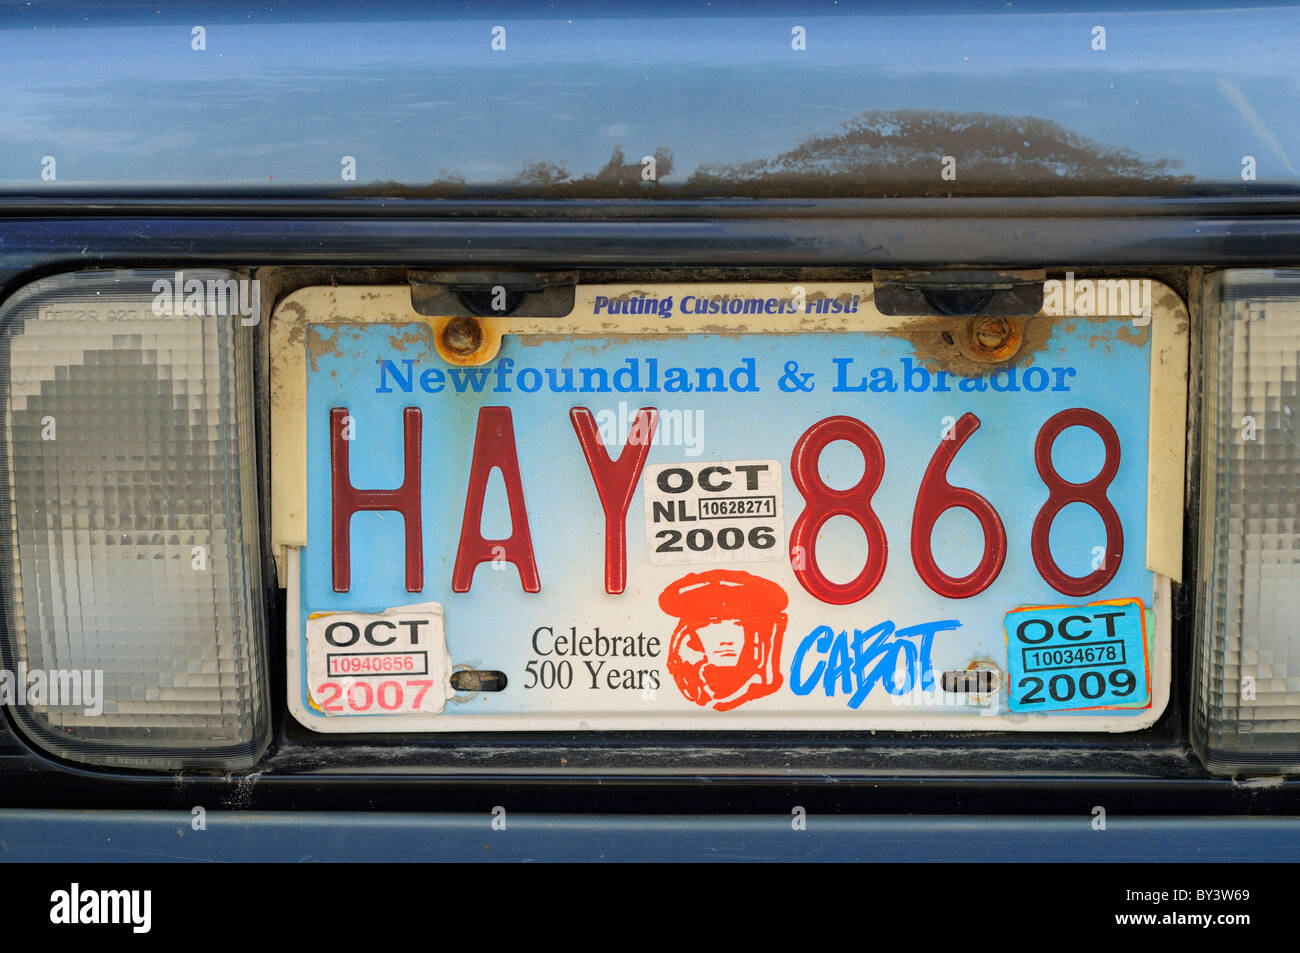 Rear Licence Plate On An Old Car In Newfoundland Canada Stock Photo ...